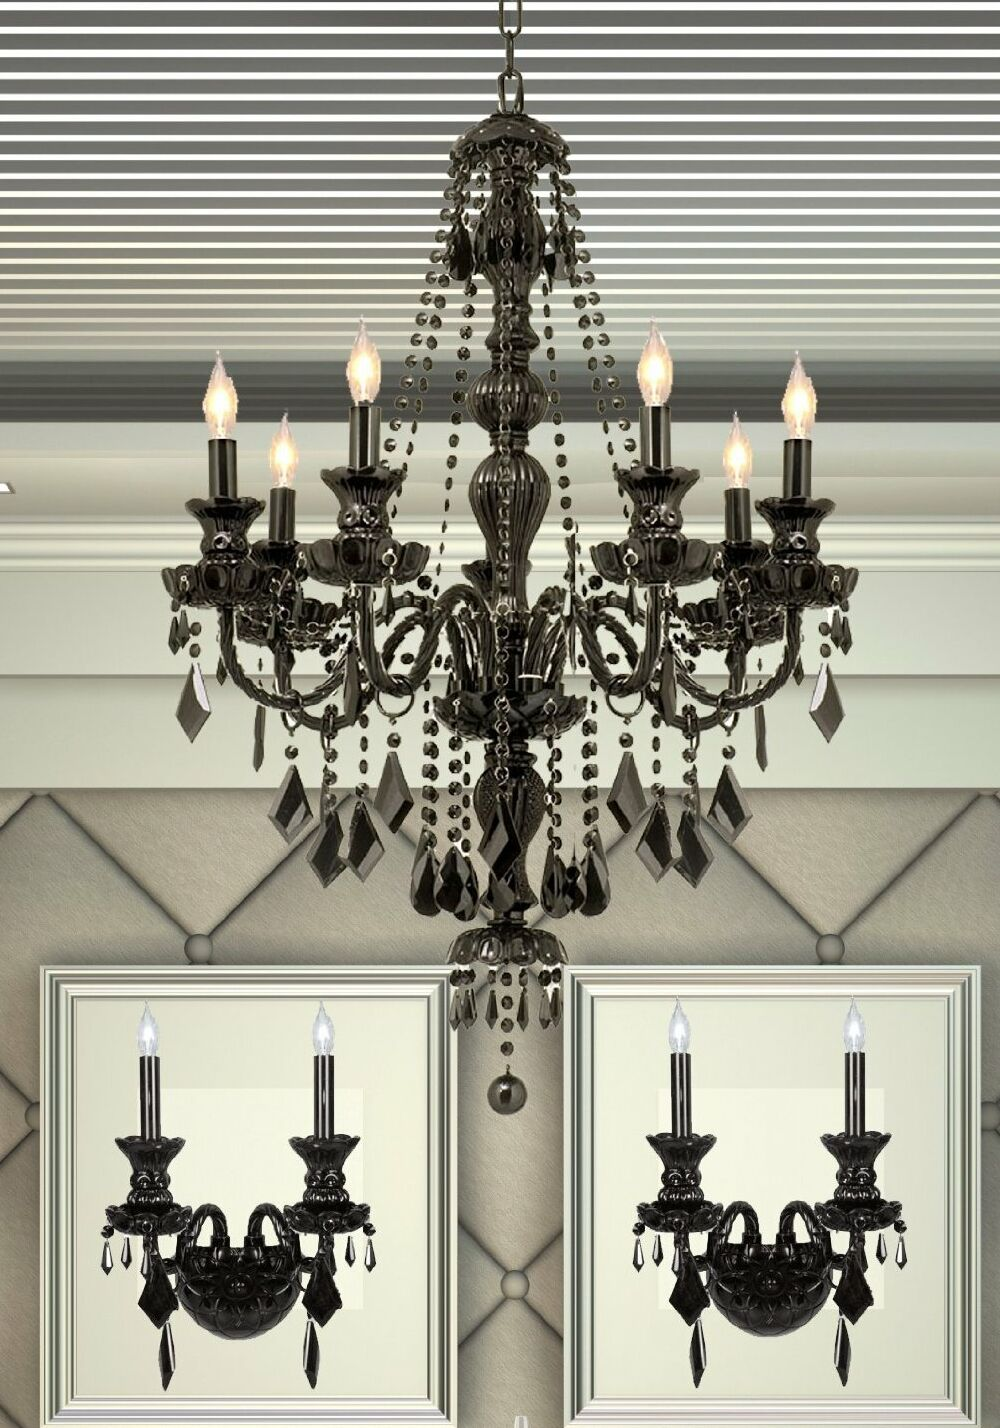 Keisler 3 Piece Candle Style Chandelier and Wall Sconce Set